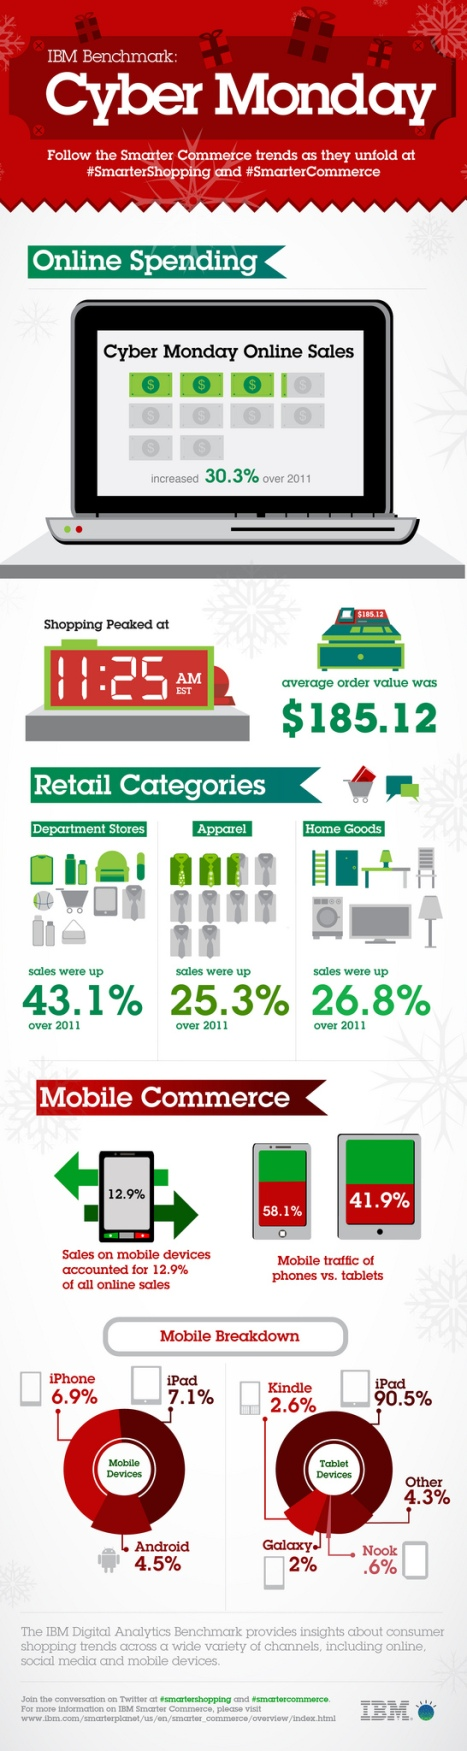 Cyber Monday 2012 breaks records, by IBM Infographic